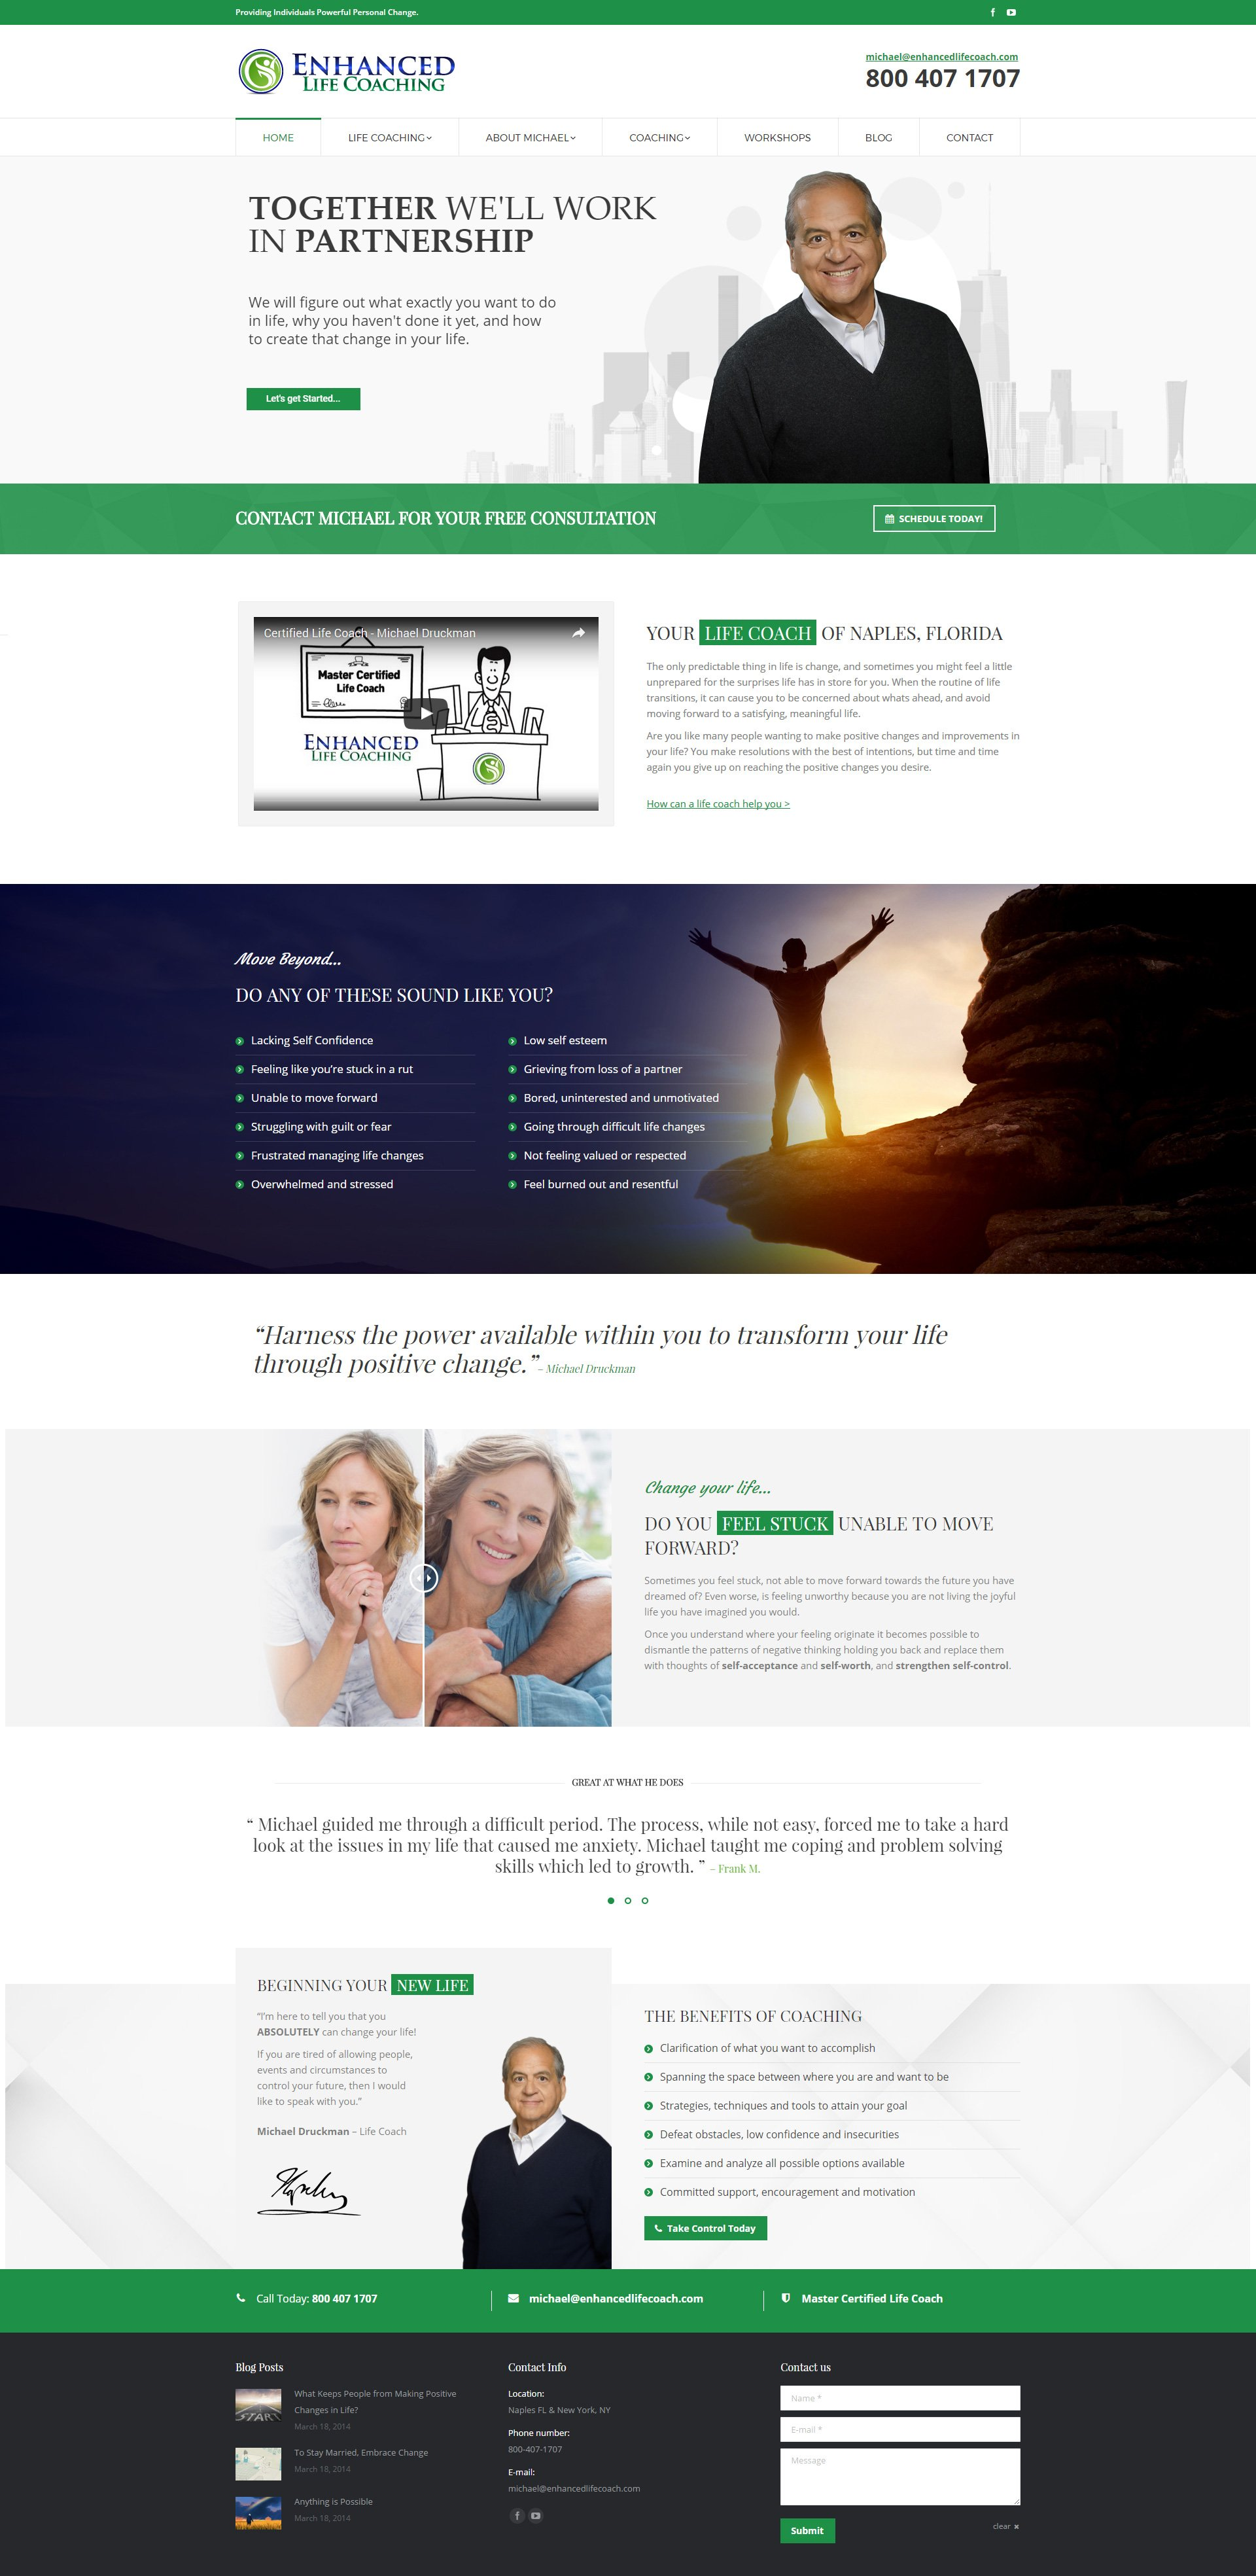 Web Design Naples Florida - Oli Denson - Life Coach Web Design